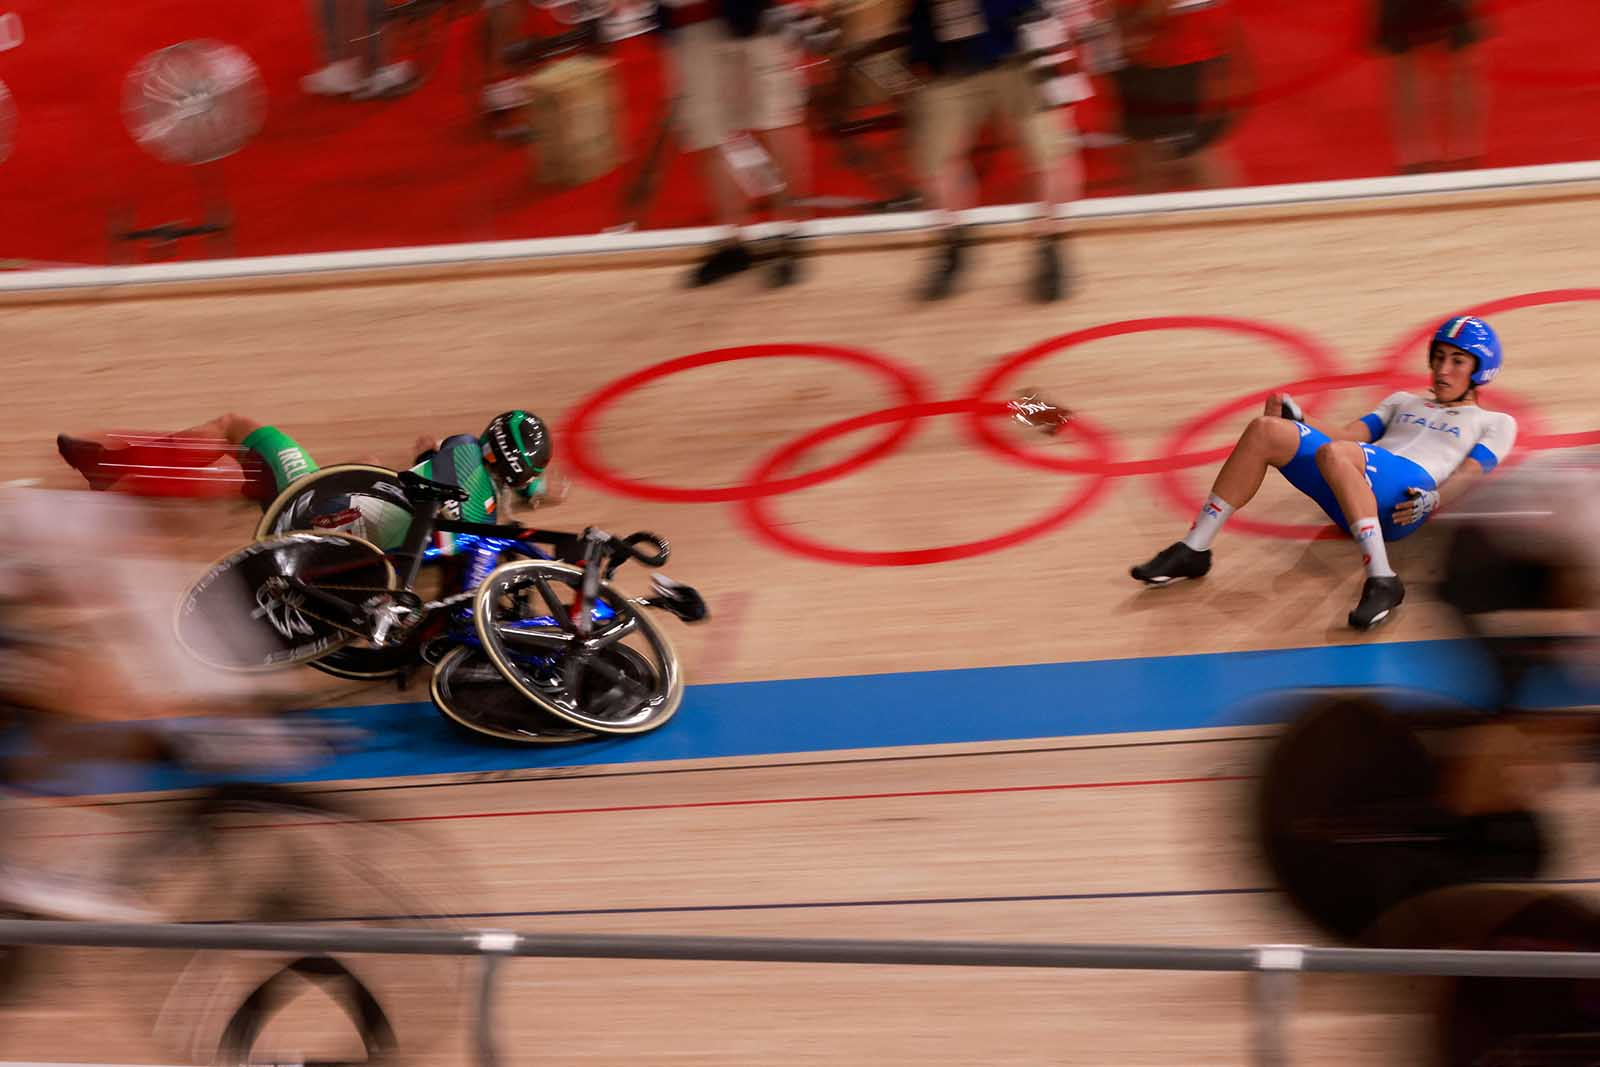 Italy's Elisa Balsamo, right, reacts after a crash in the women's track cycling Madison final on August 6.